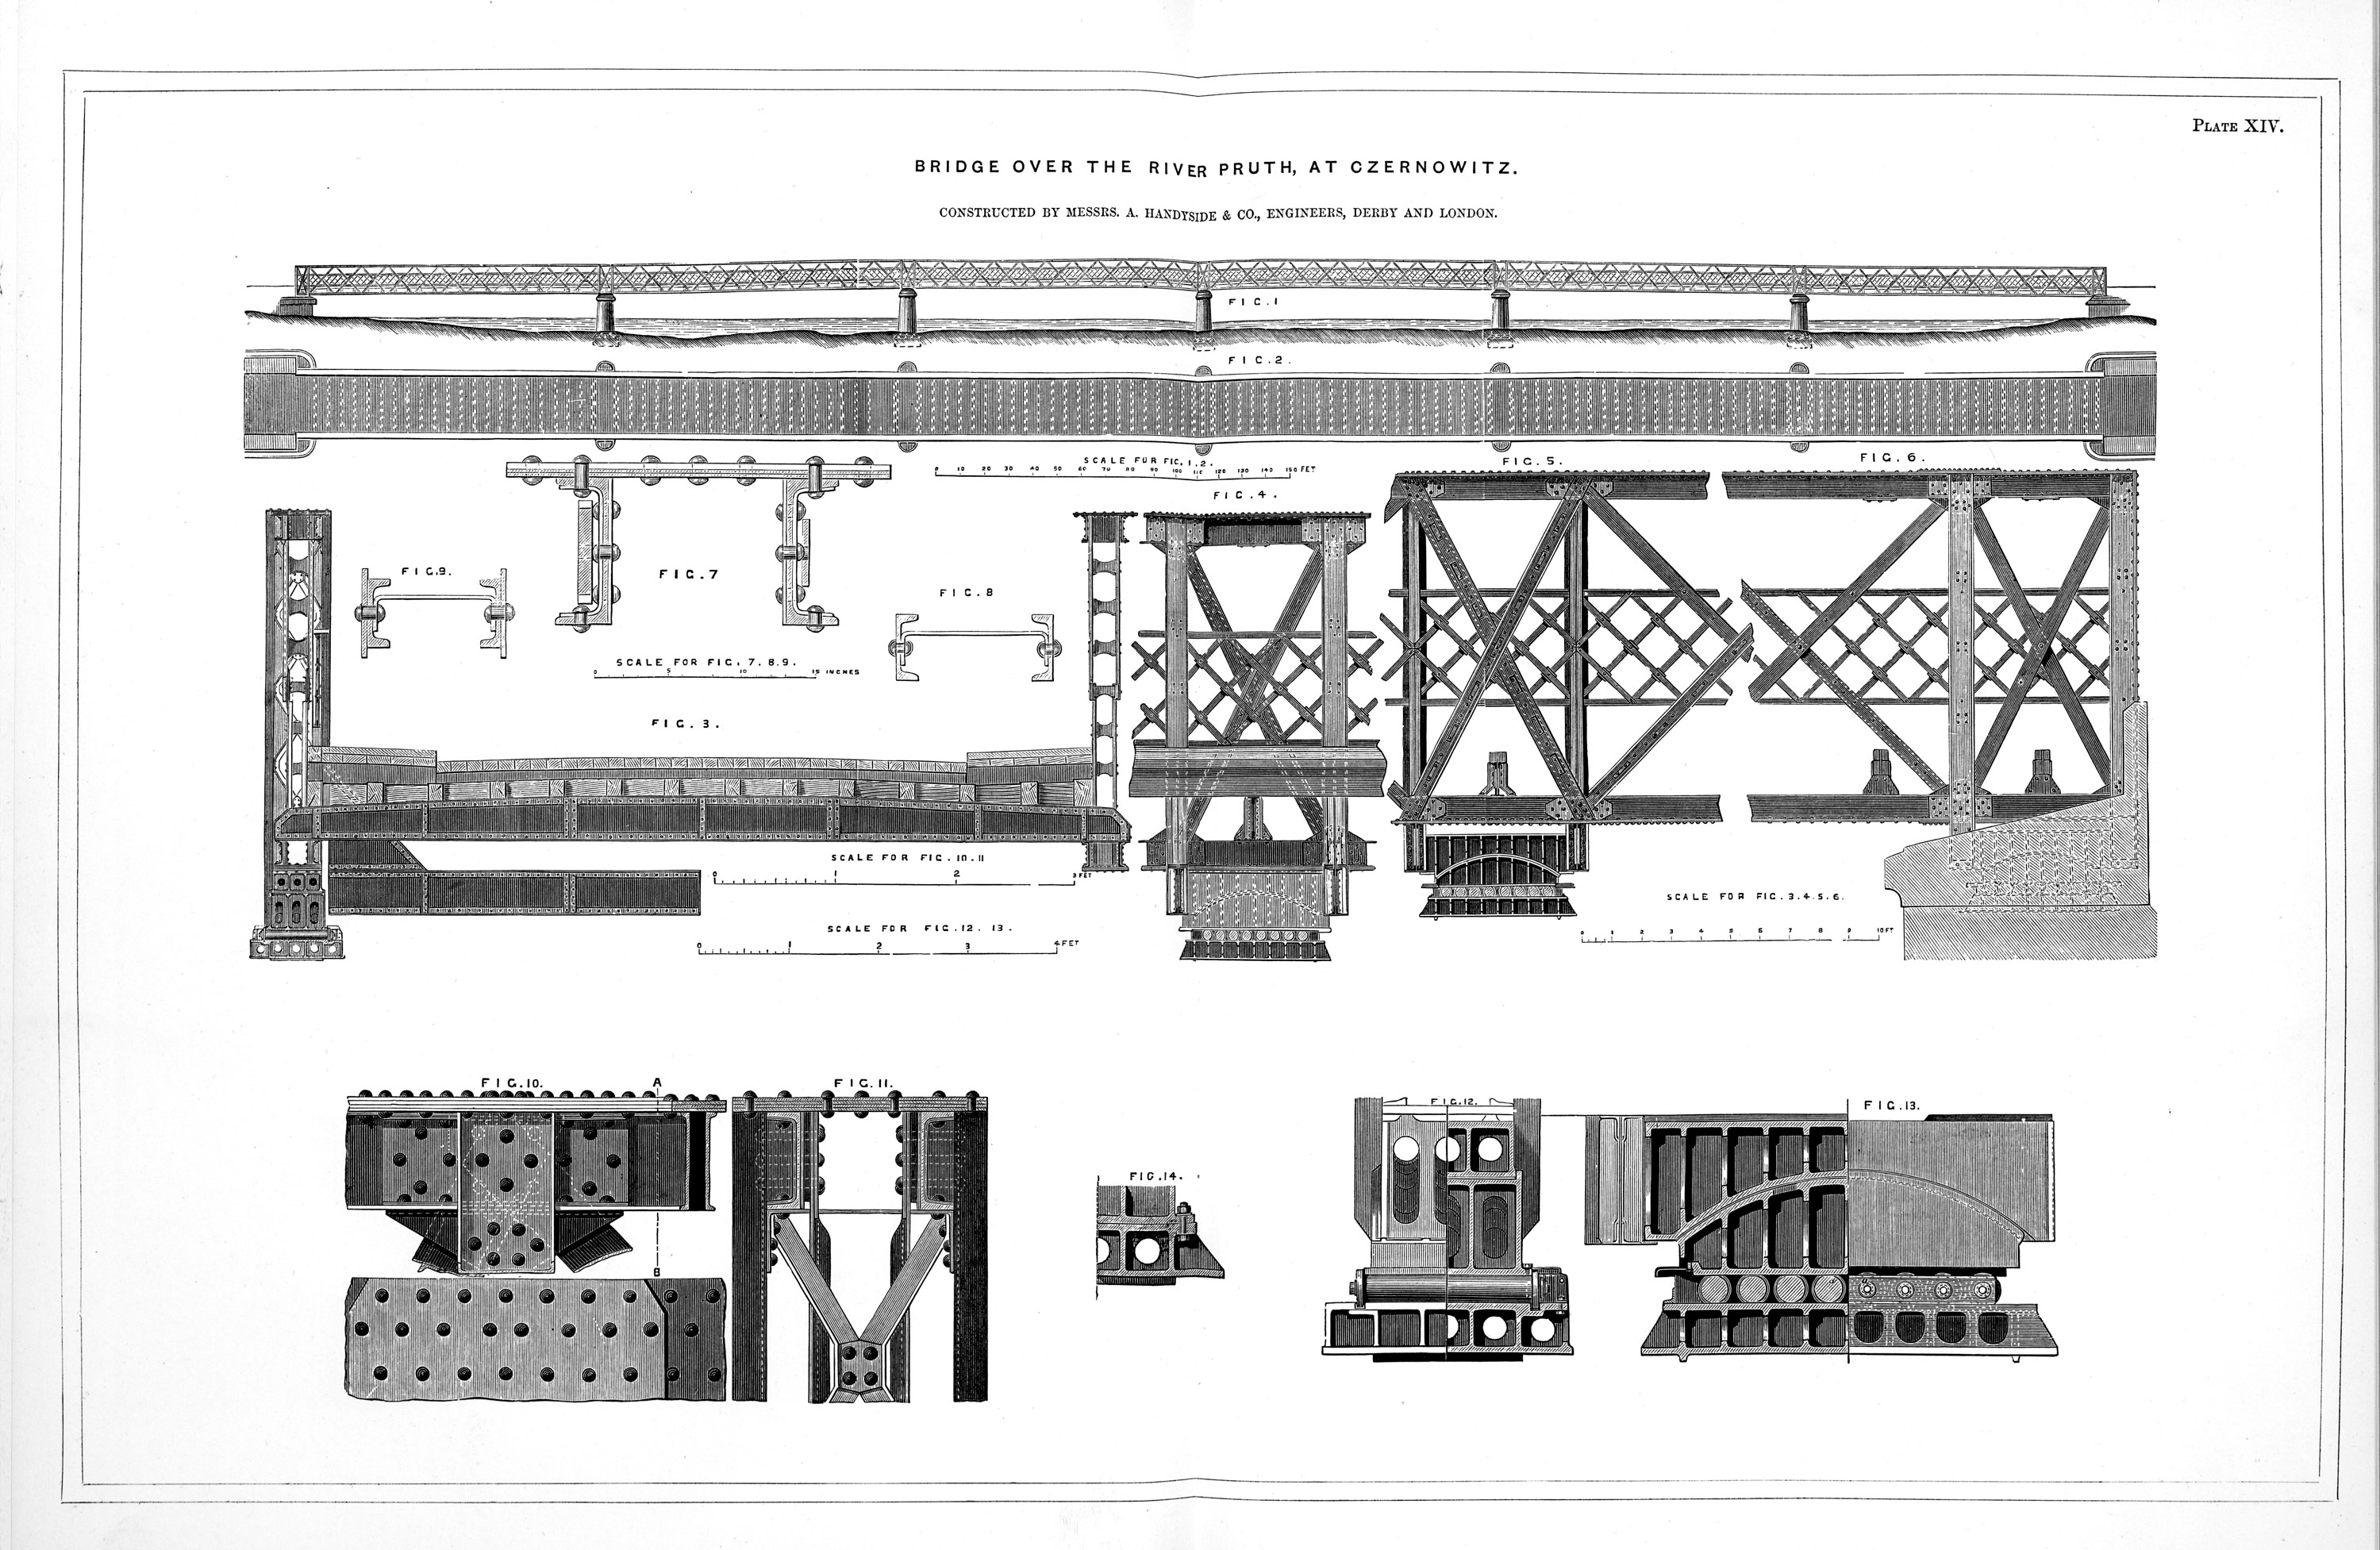 Architectural Drawings Of Bridges 7 best masonry arch bridges images on pinterest | arches, bridges